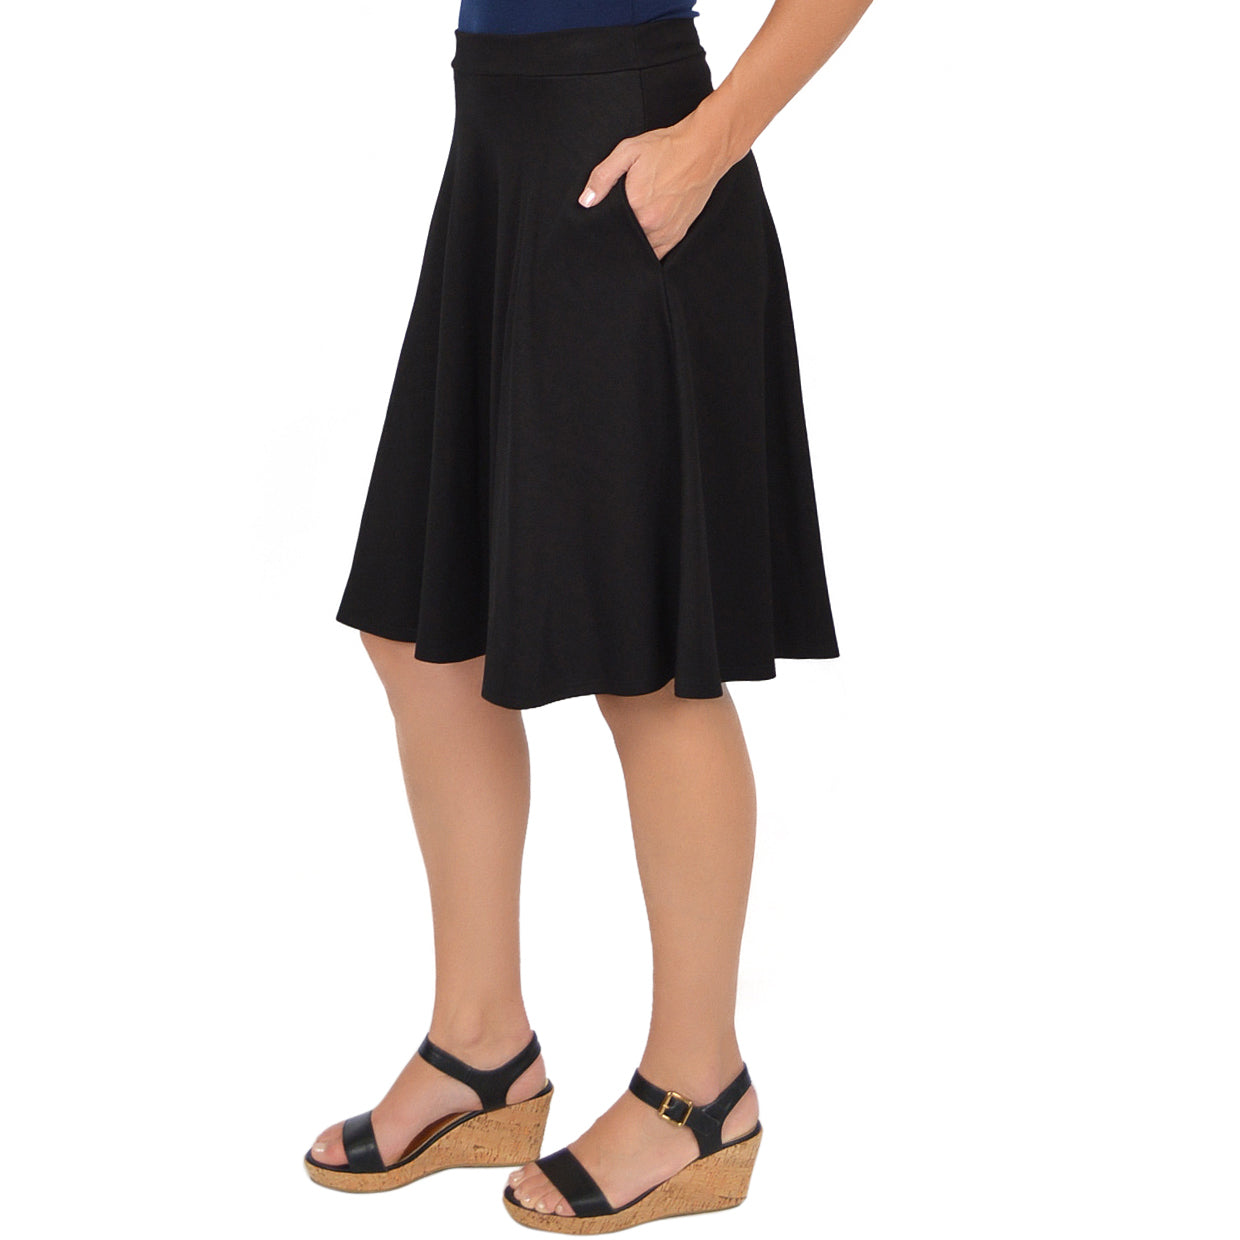 Plus Size Circle Skirt With Pockets